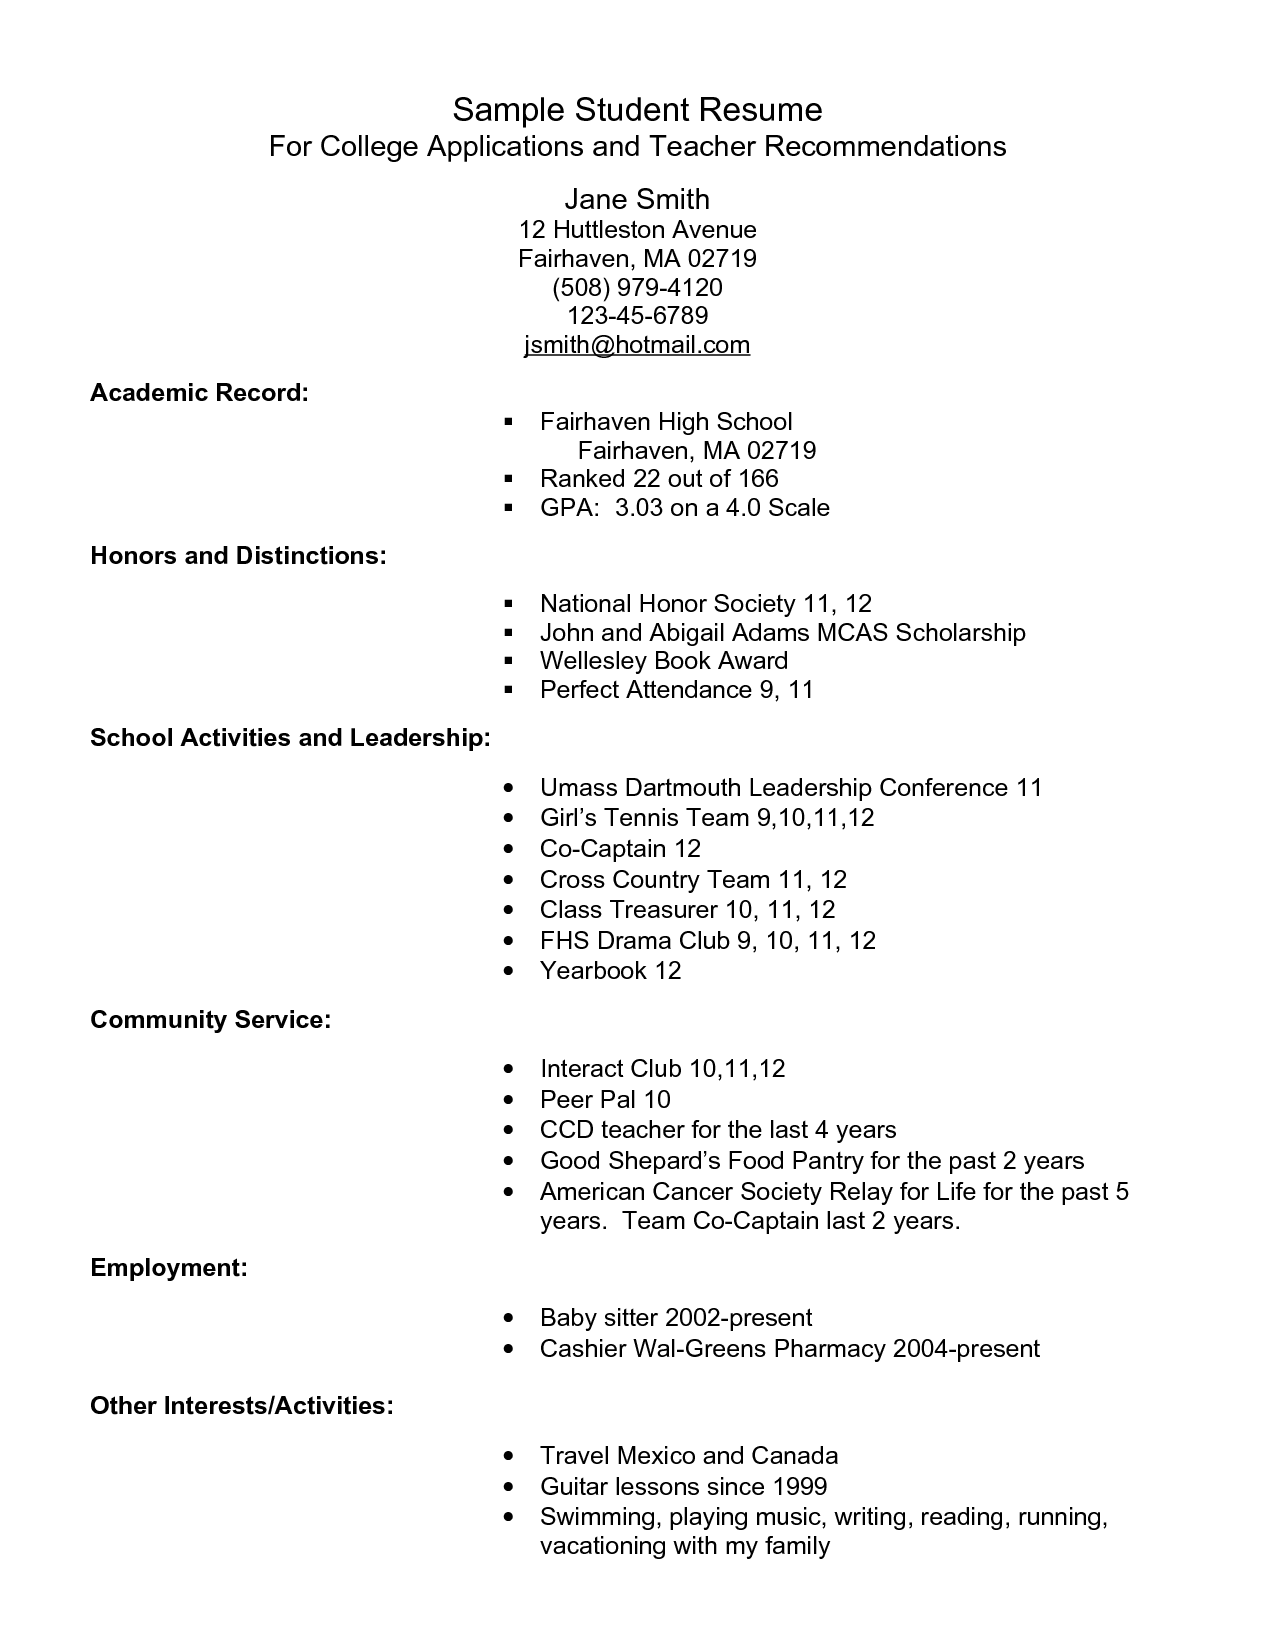 admission resume samples example resume for high school students for college applications admission resume samples - Sample Student Resume For College Application